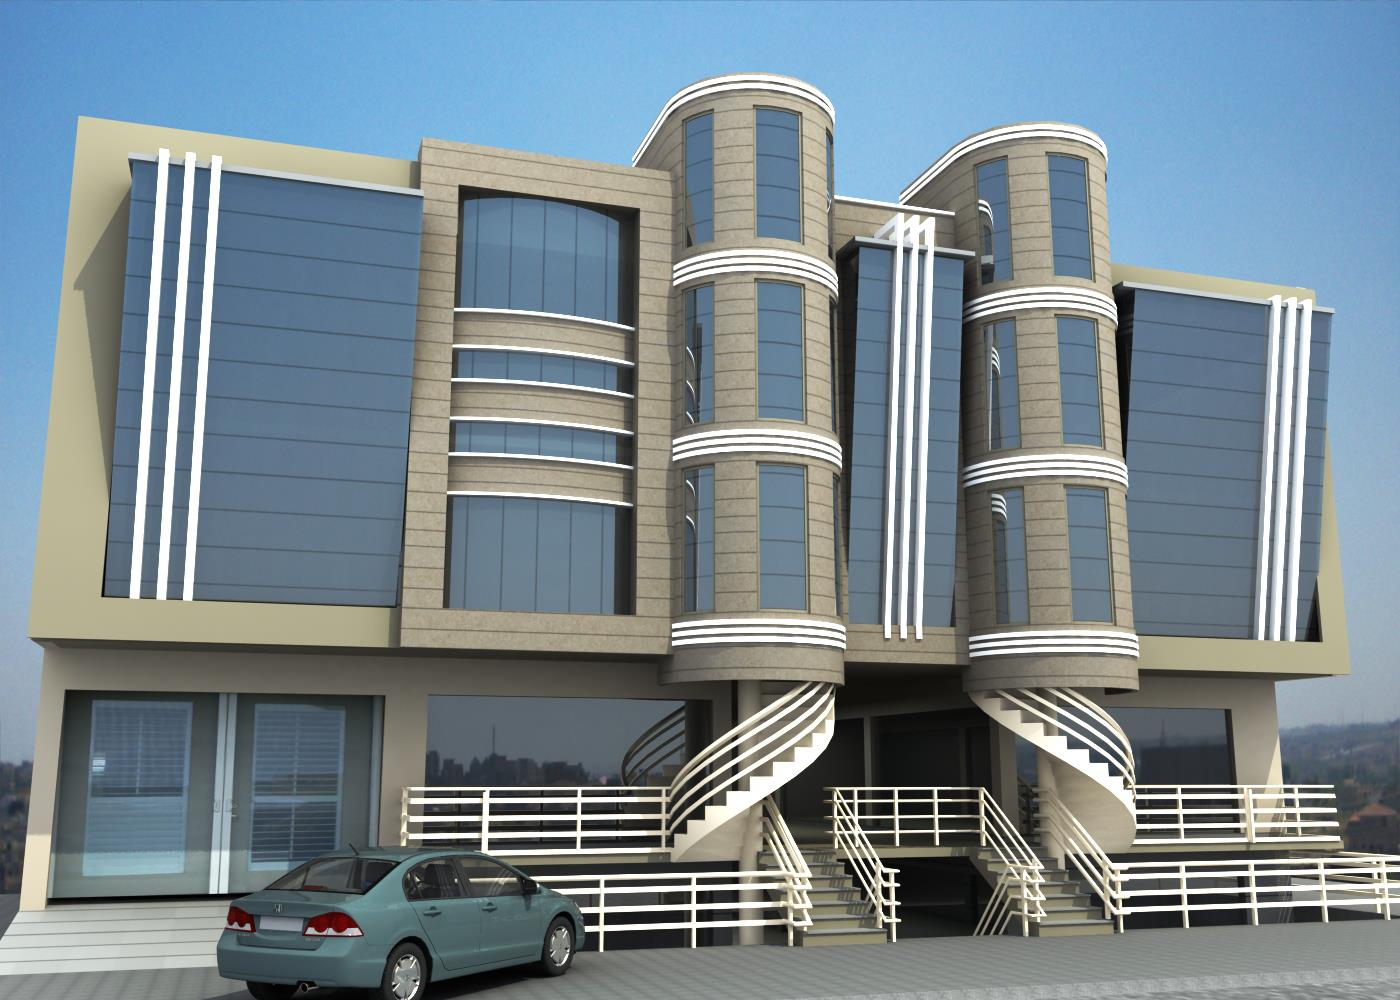 Commercial buildng design 3d architecture visualizations 3d architecture design